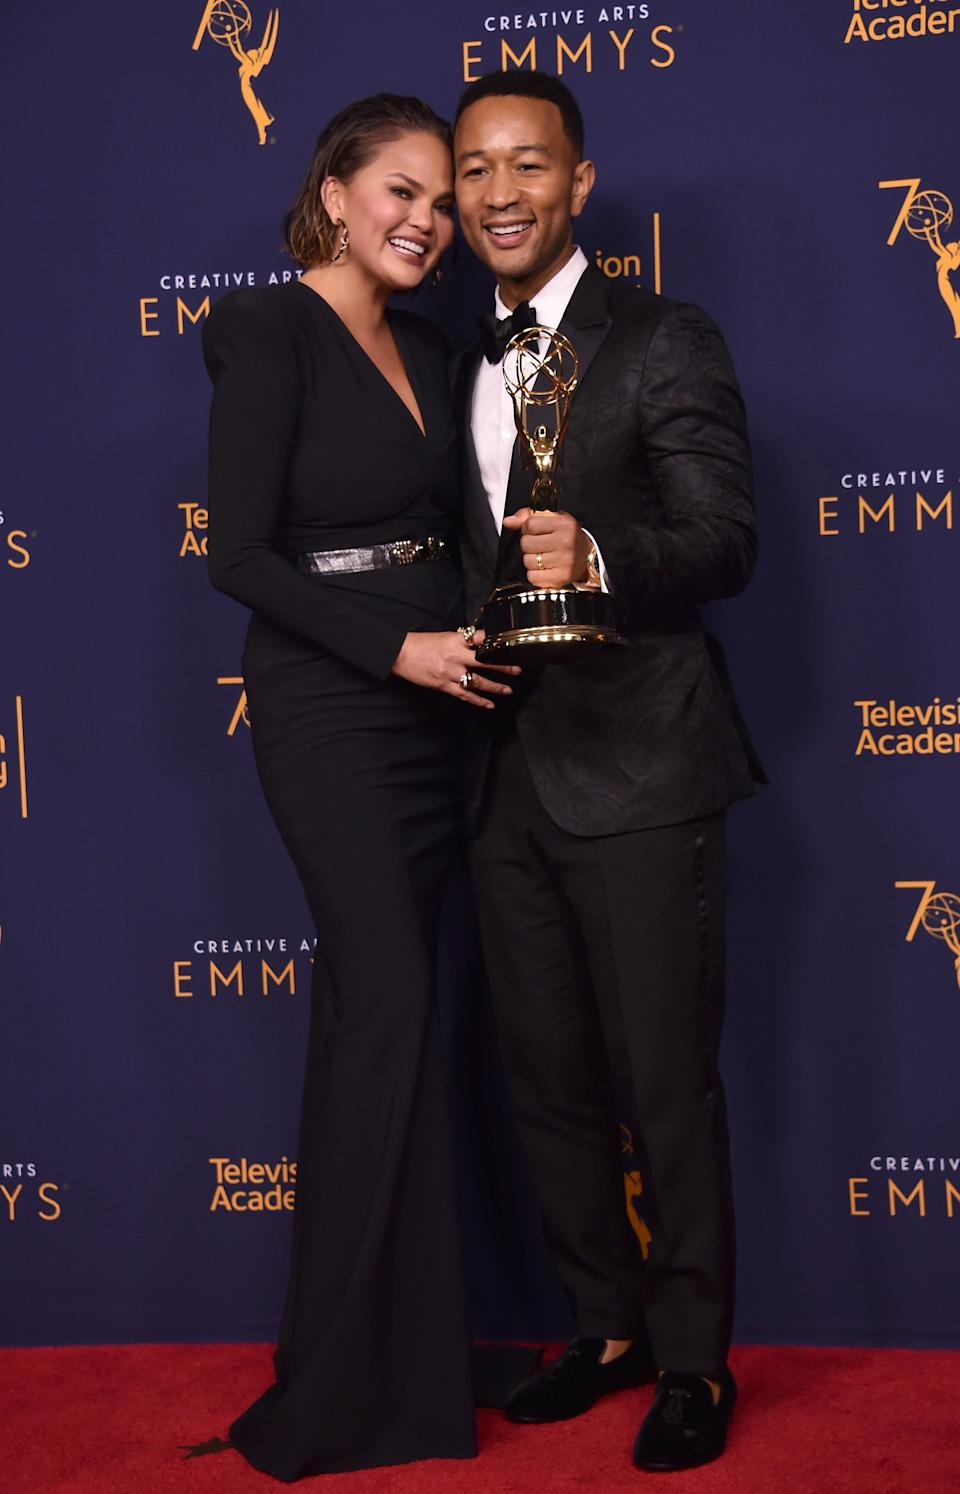 Chrissy Teigen and John Legend are one of the entertainment industry's most beloved couples. At the 2018 Emmys (as seen in this photo), they upped the cute factor with their coordinated ensembles, which perfectly complemented Legend's golden statue.